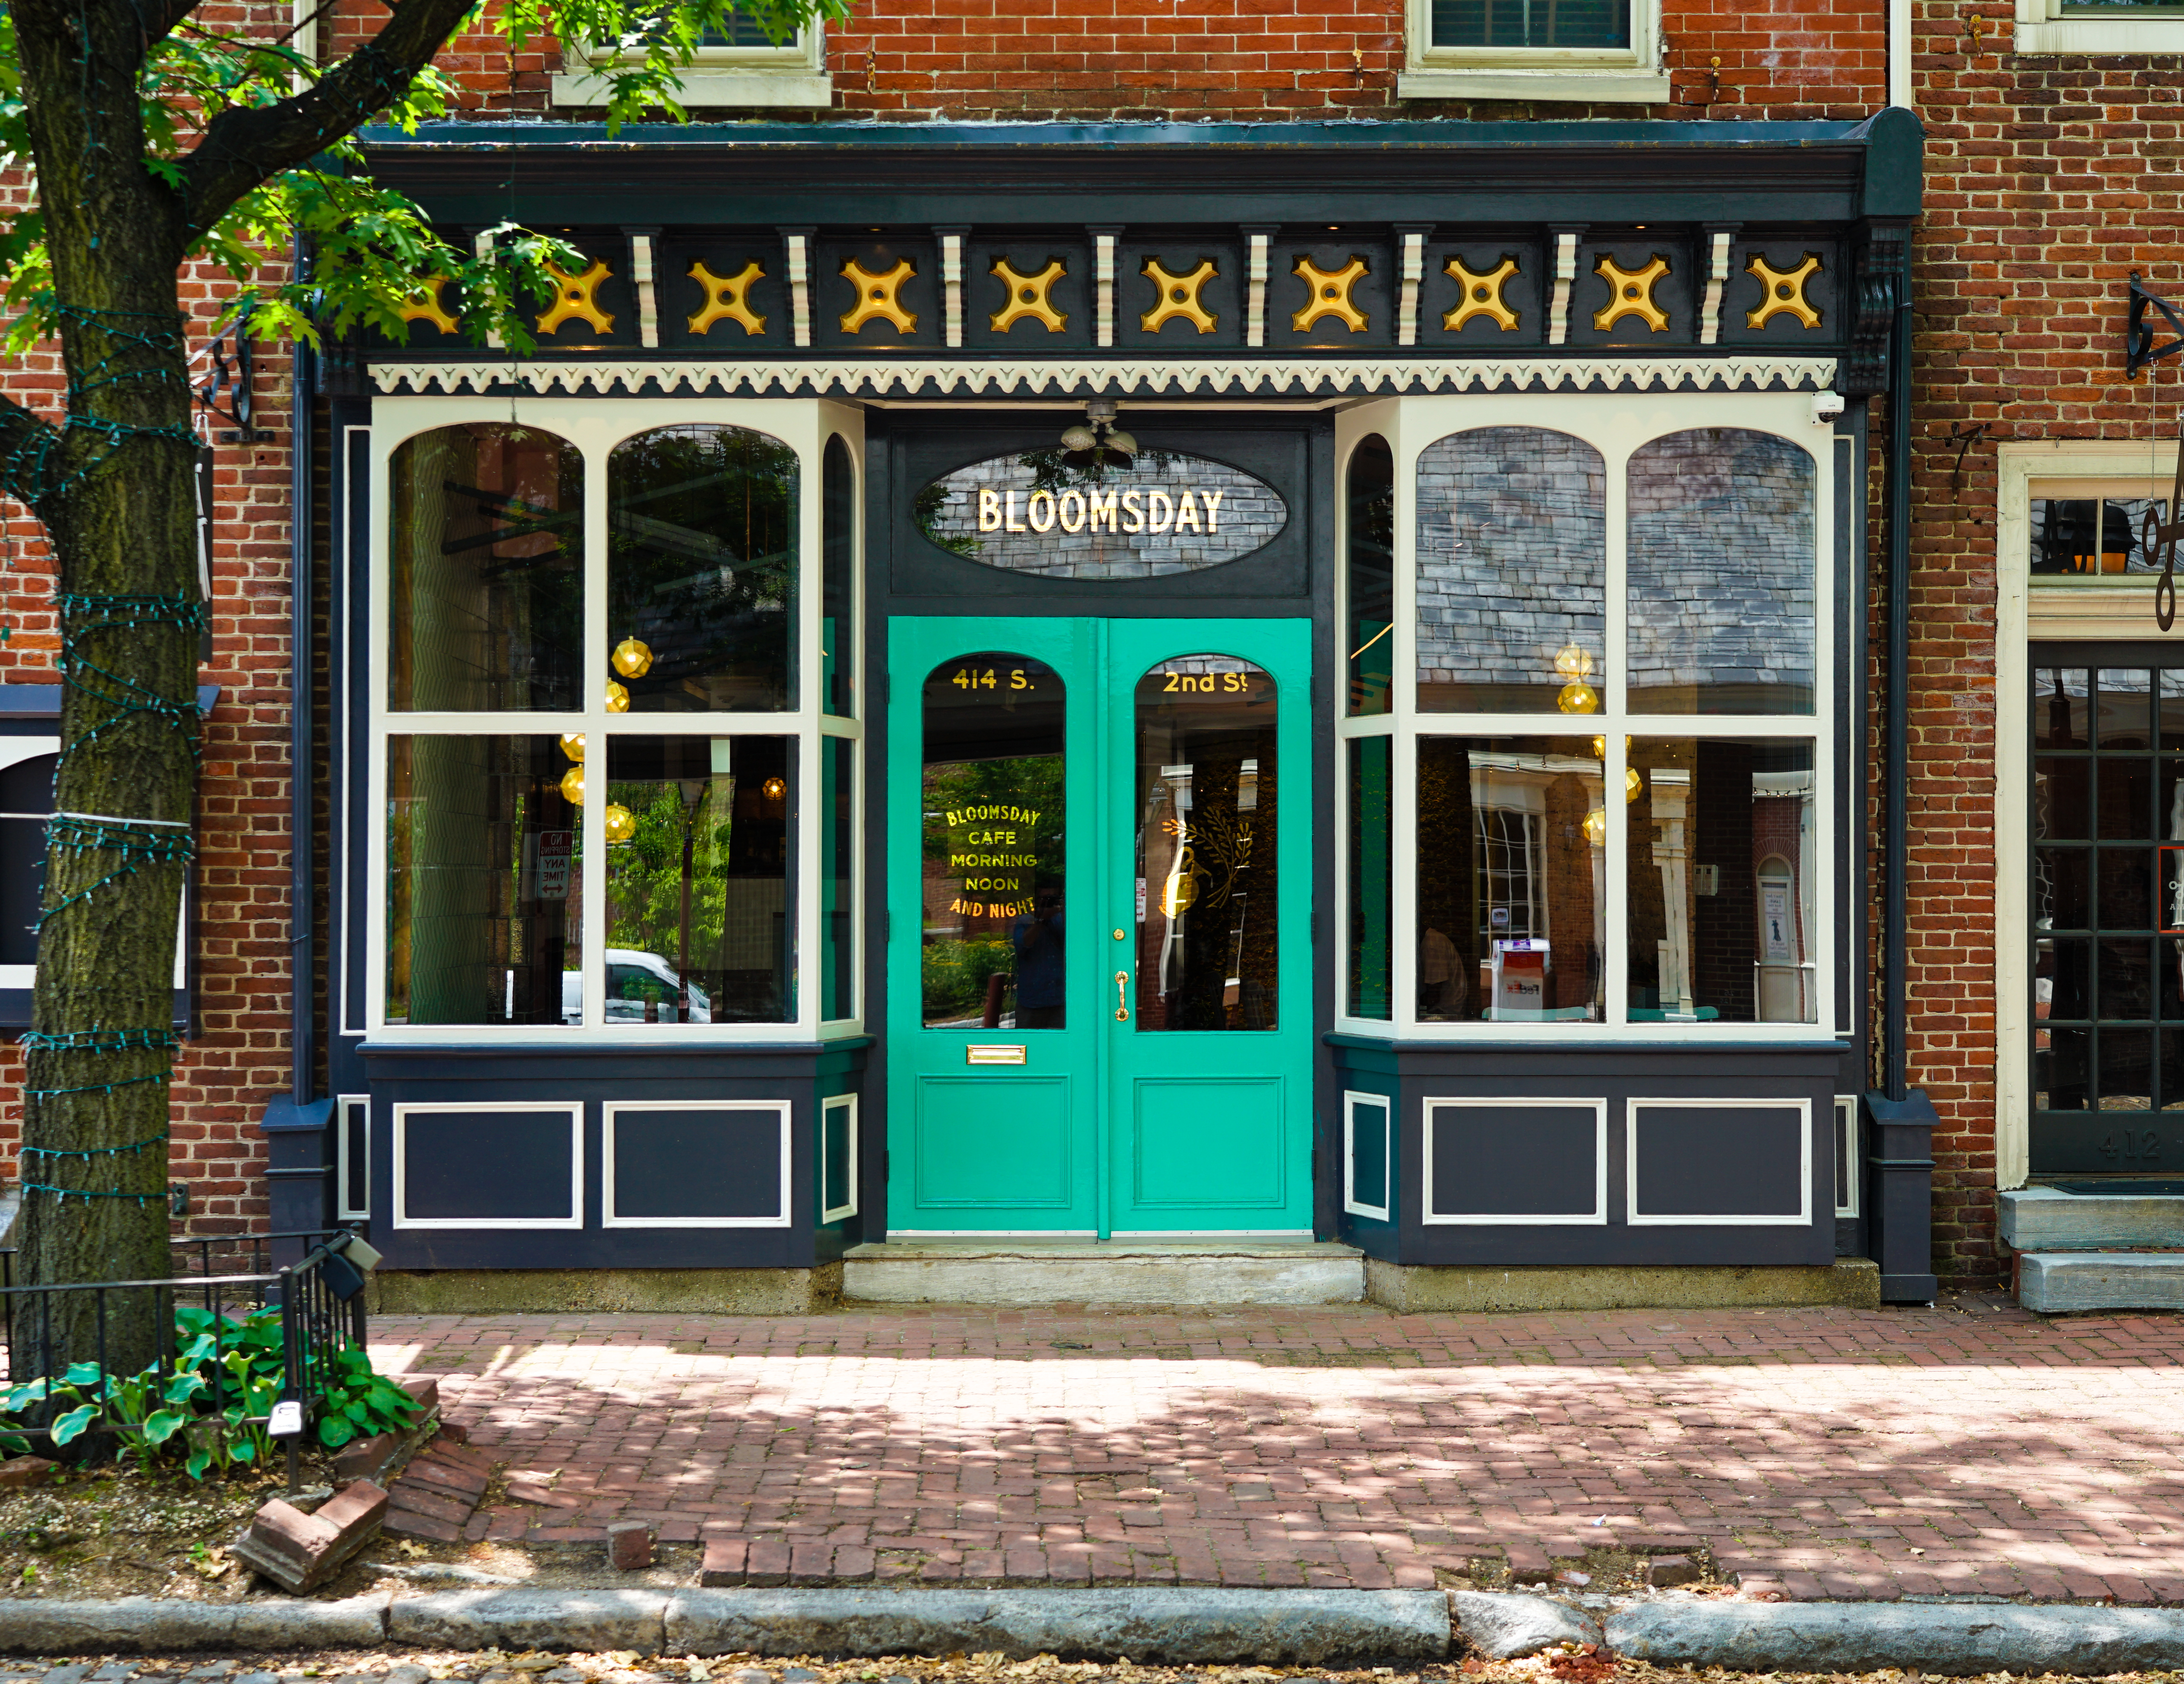 Bloomsday cafe front windows with a teal green door and a yellow and white overhang